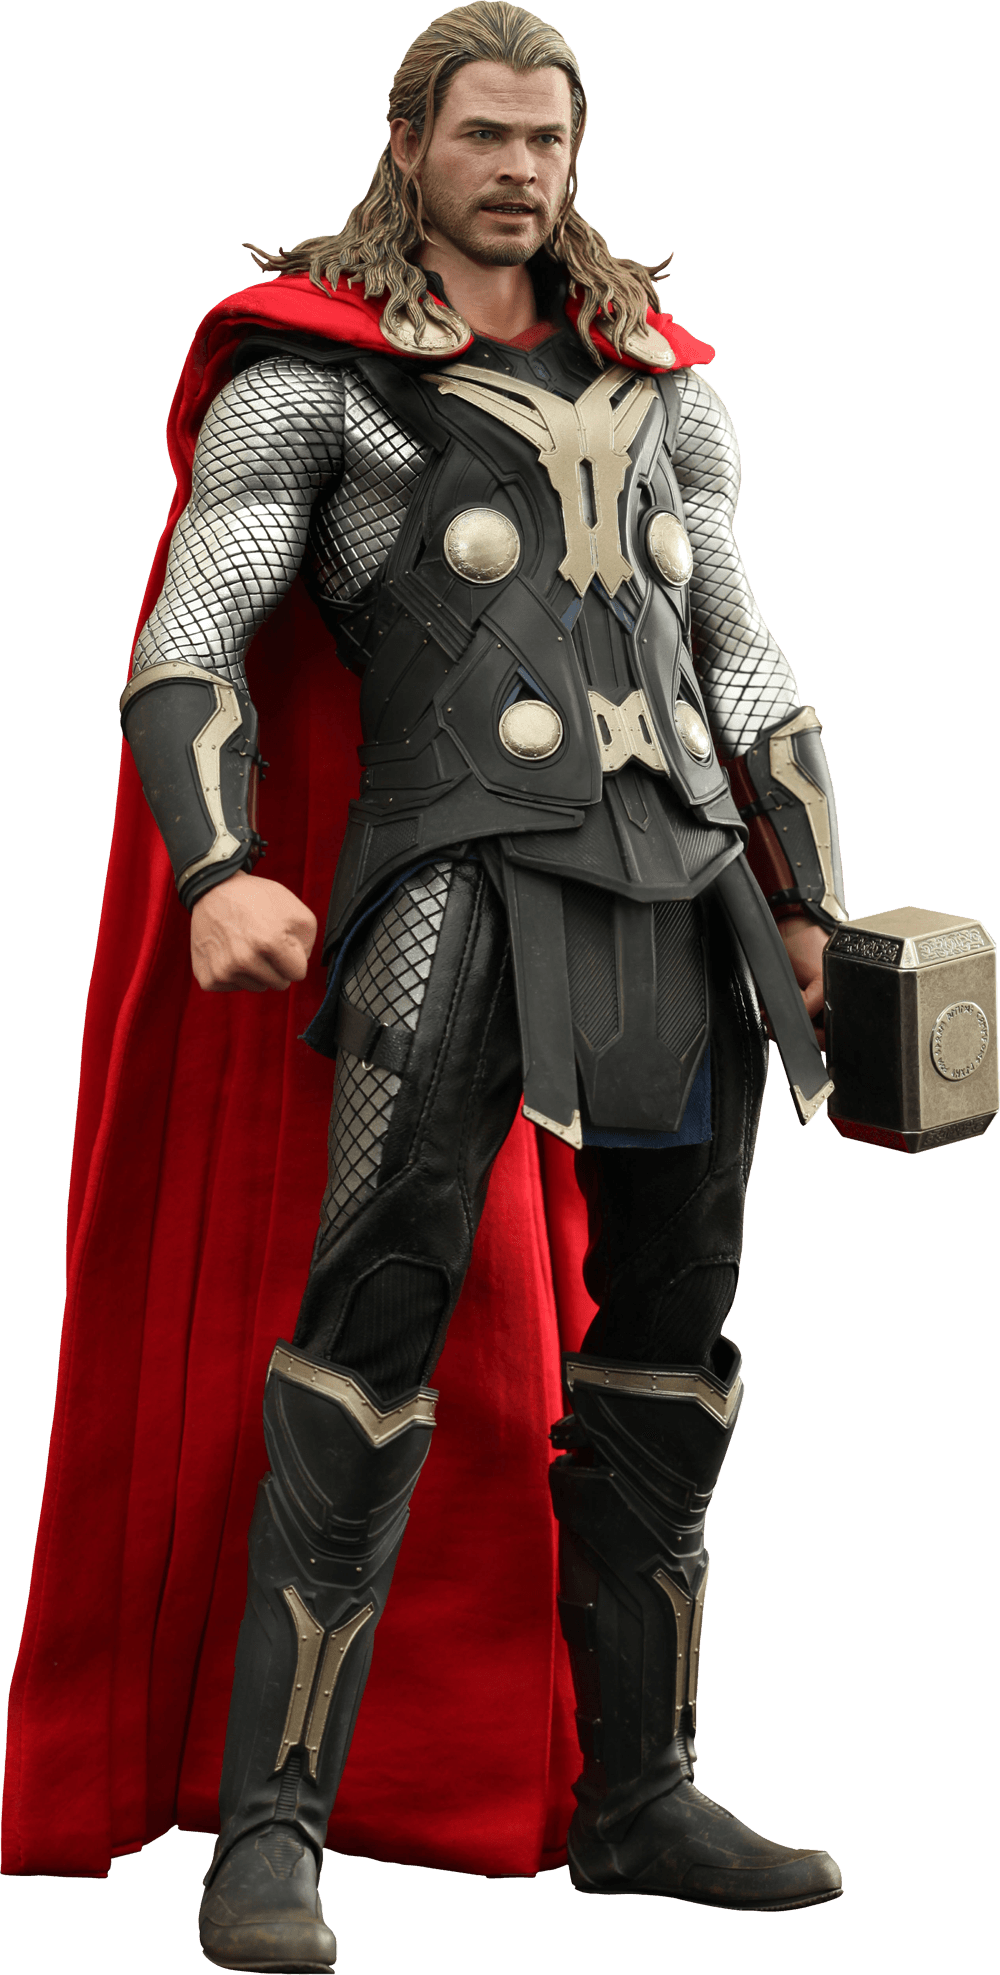 Thor Sideview Transparent Png Stickpng